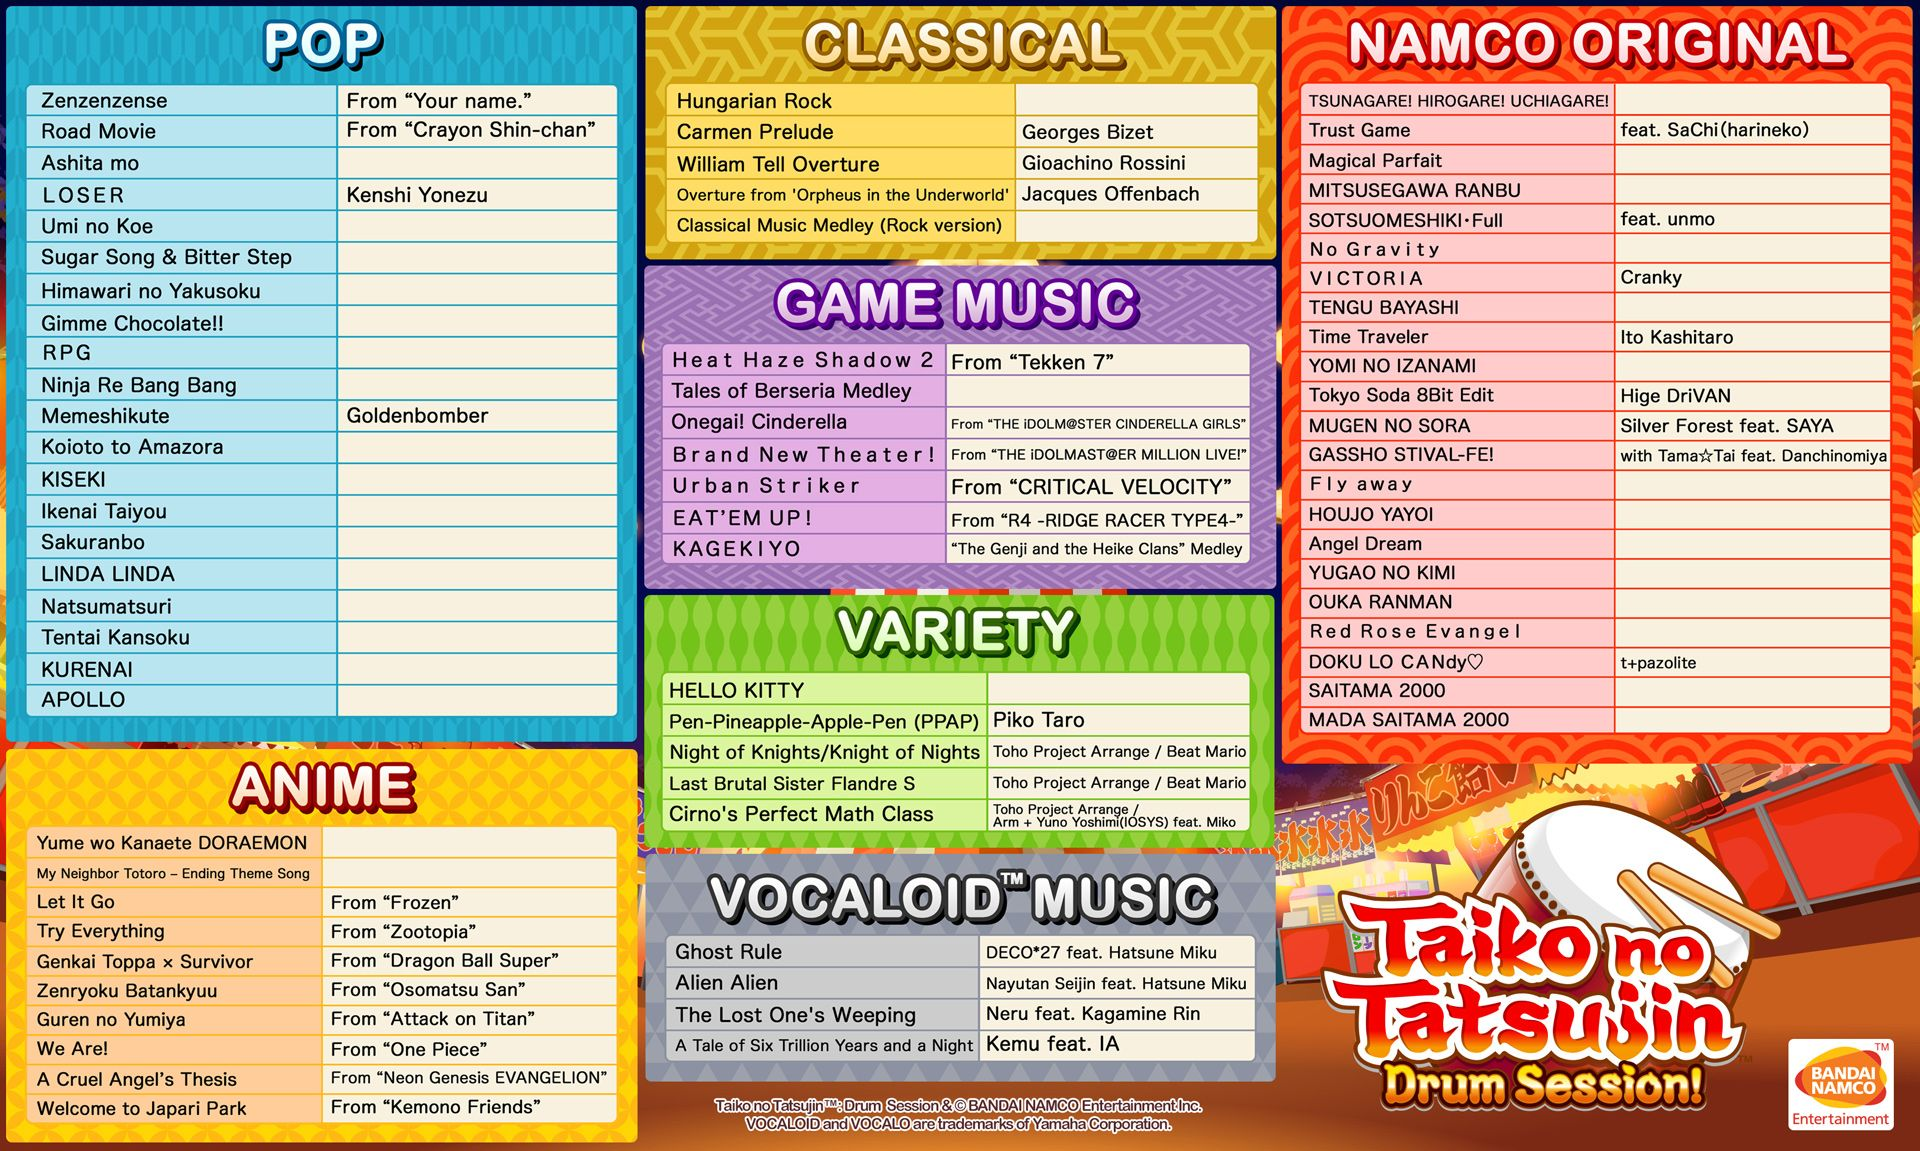 Discover the amazing track list for Taiko no Tatsujin |